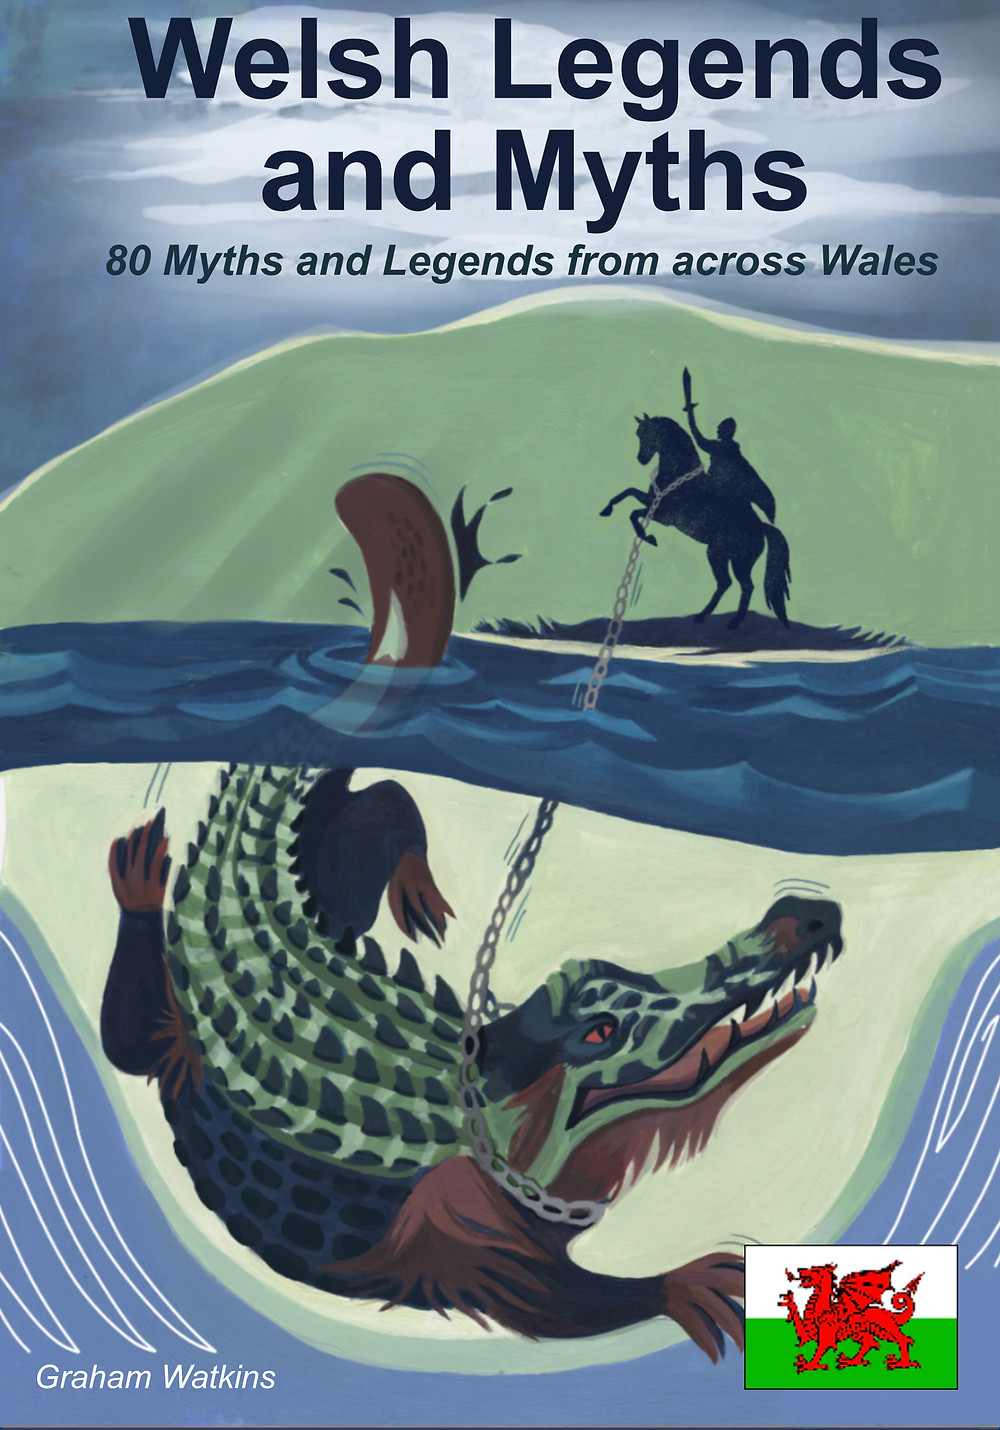 Welsh Legends and Myths